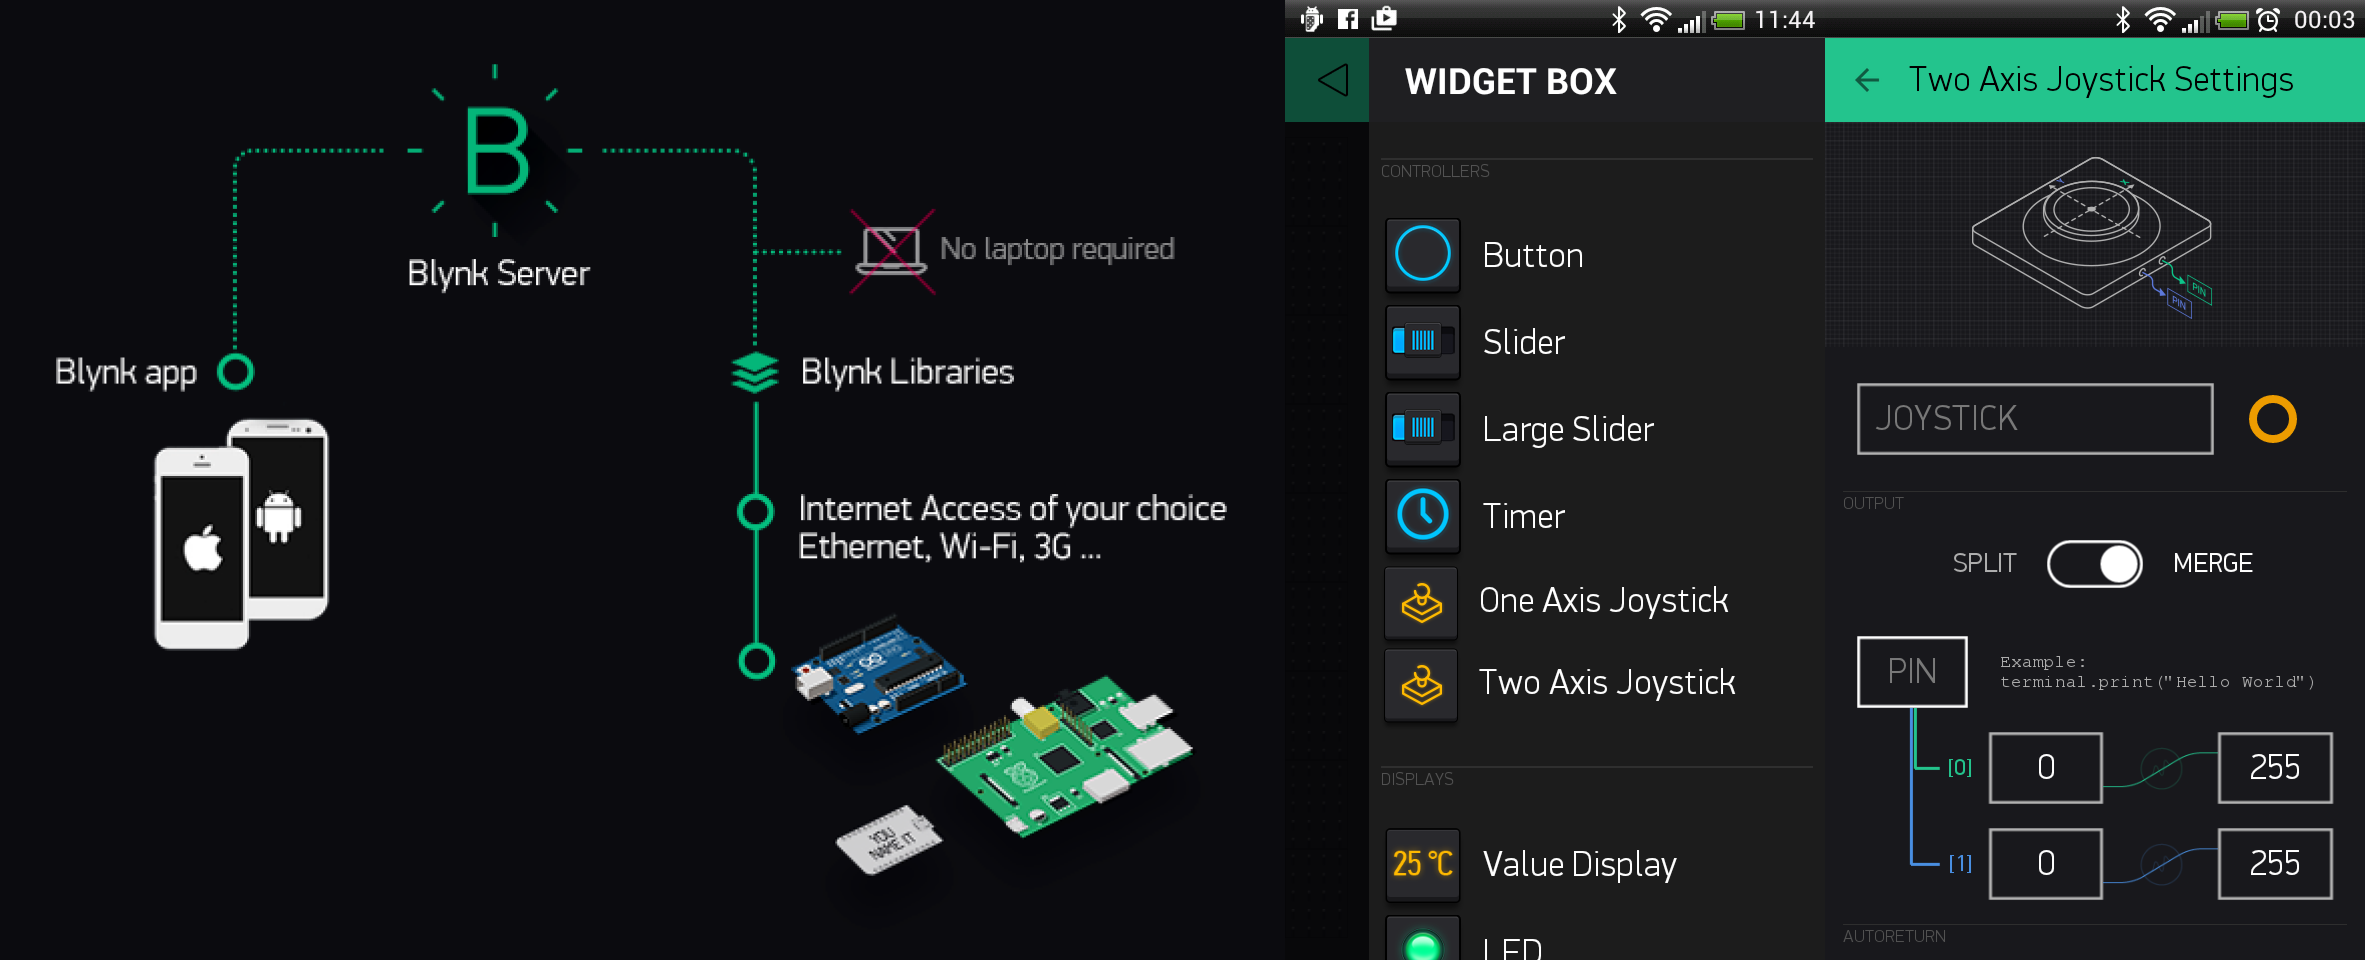 App Control With Ease Using Blynk | Hackaday